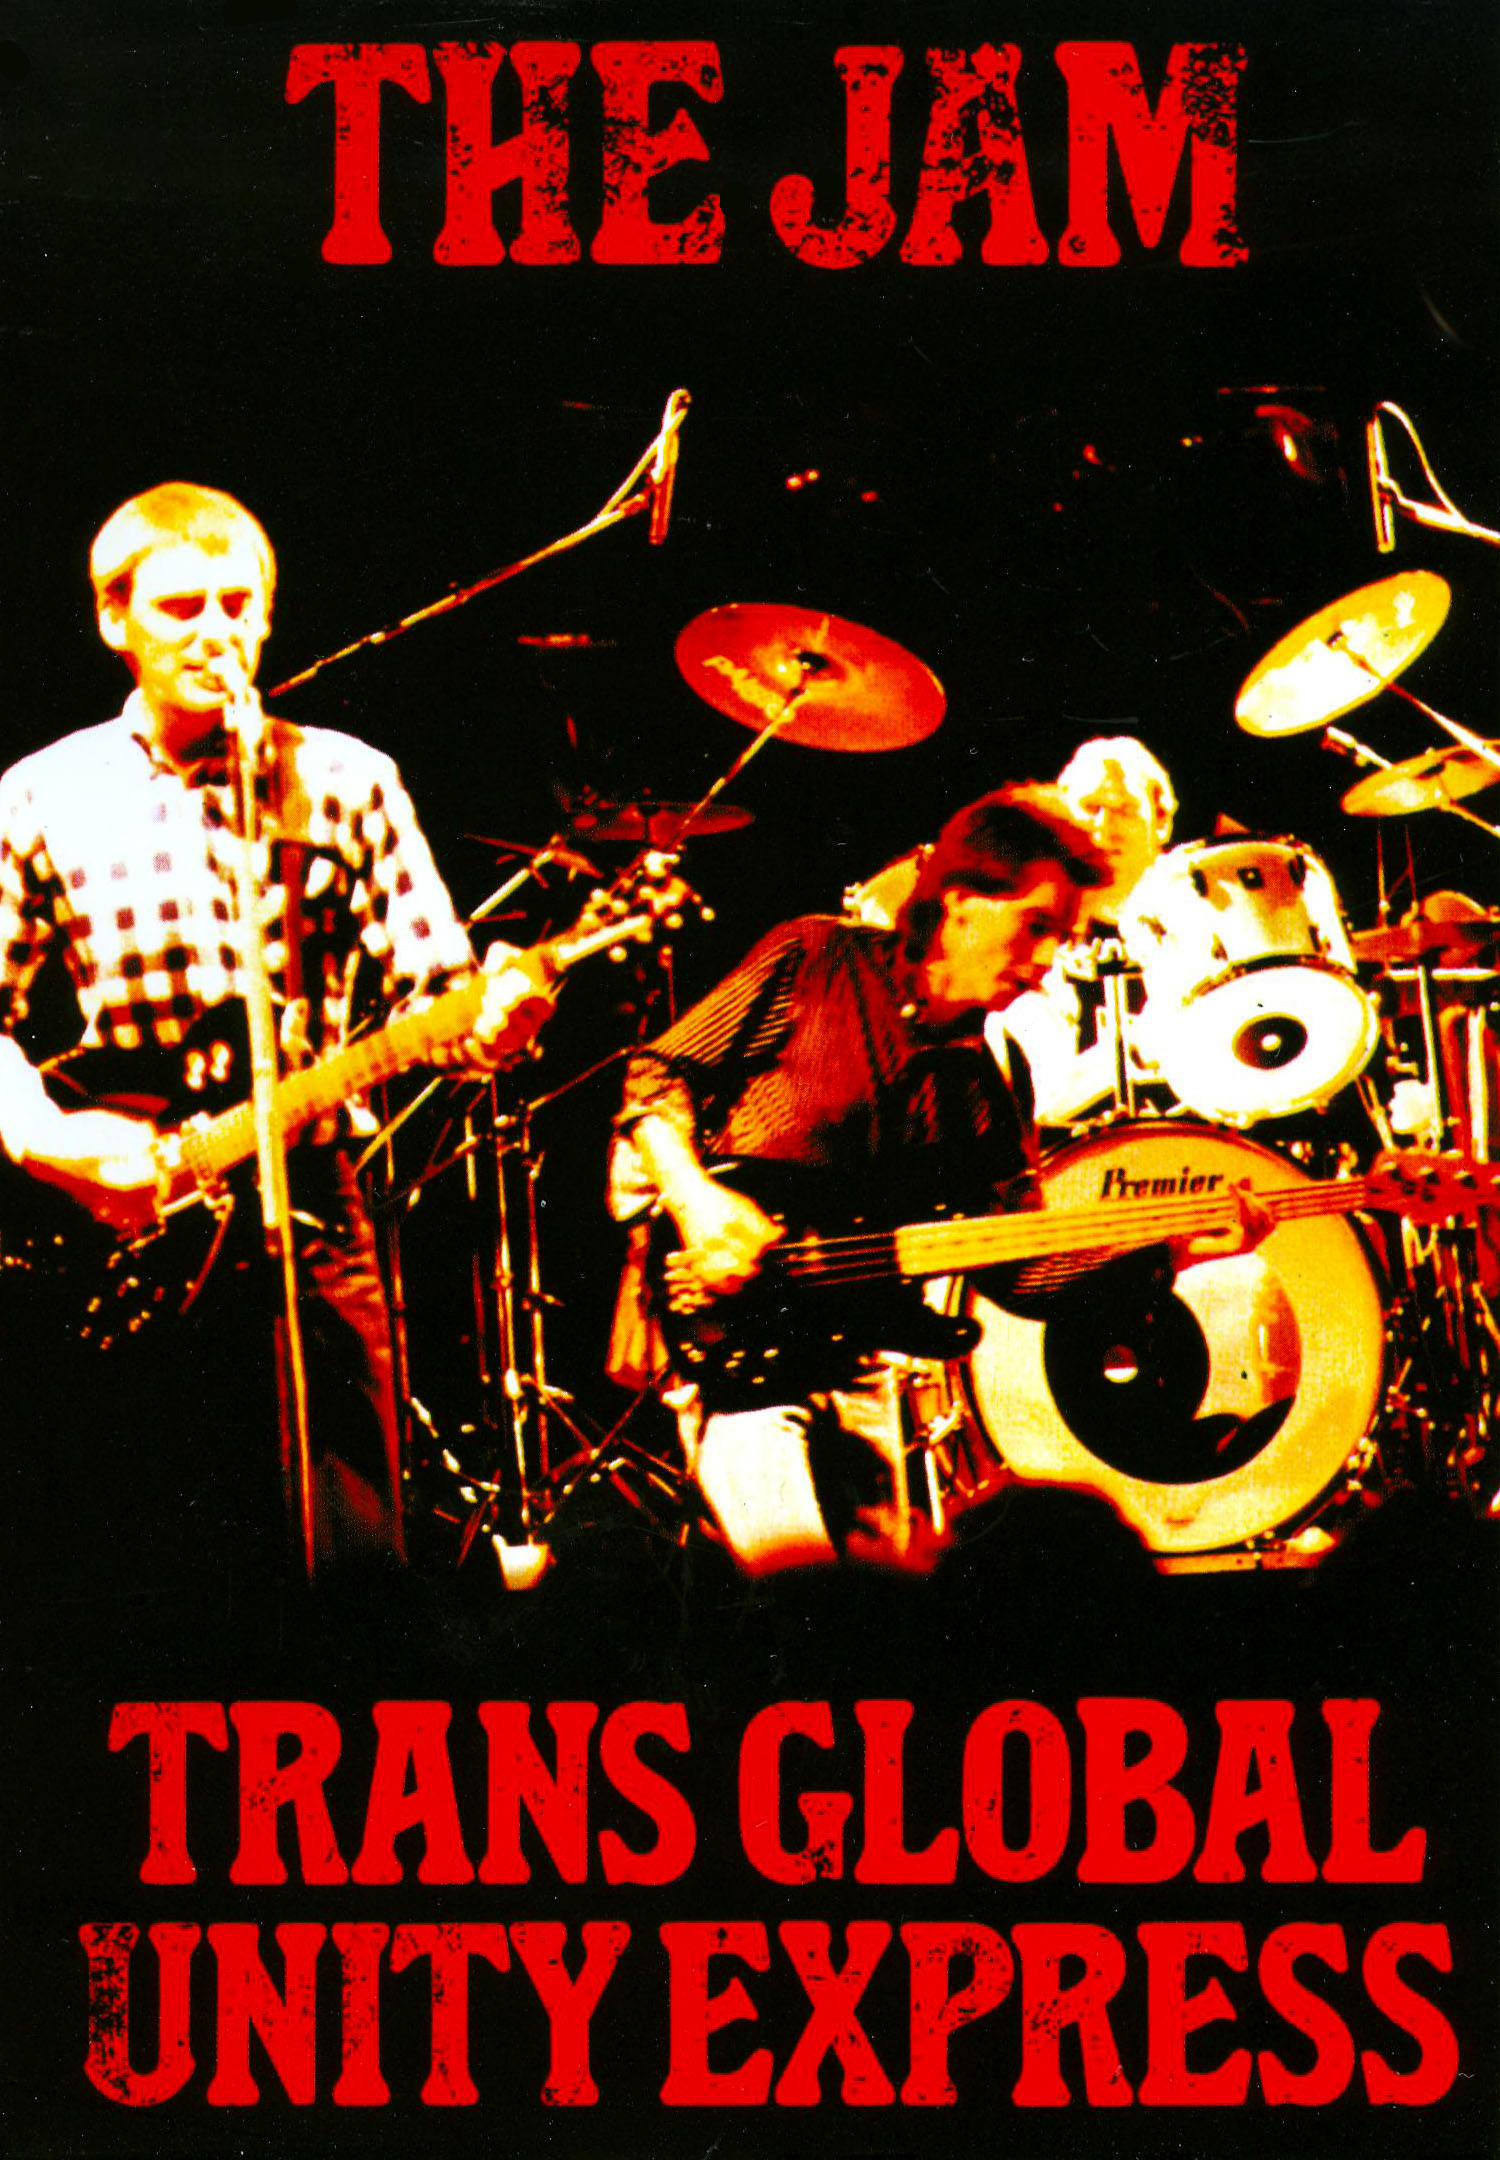 Jam: The Trans-Global Unity Express